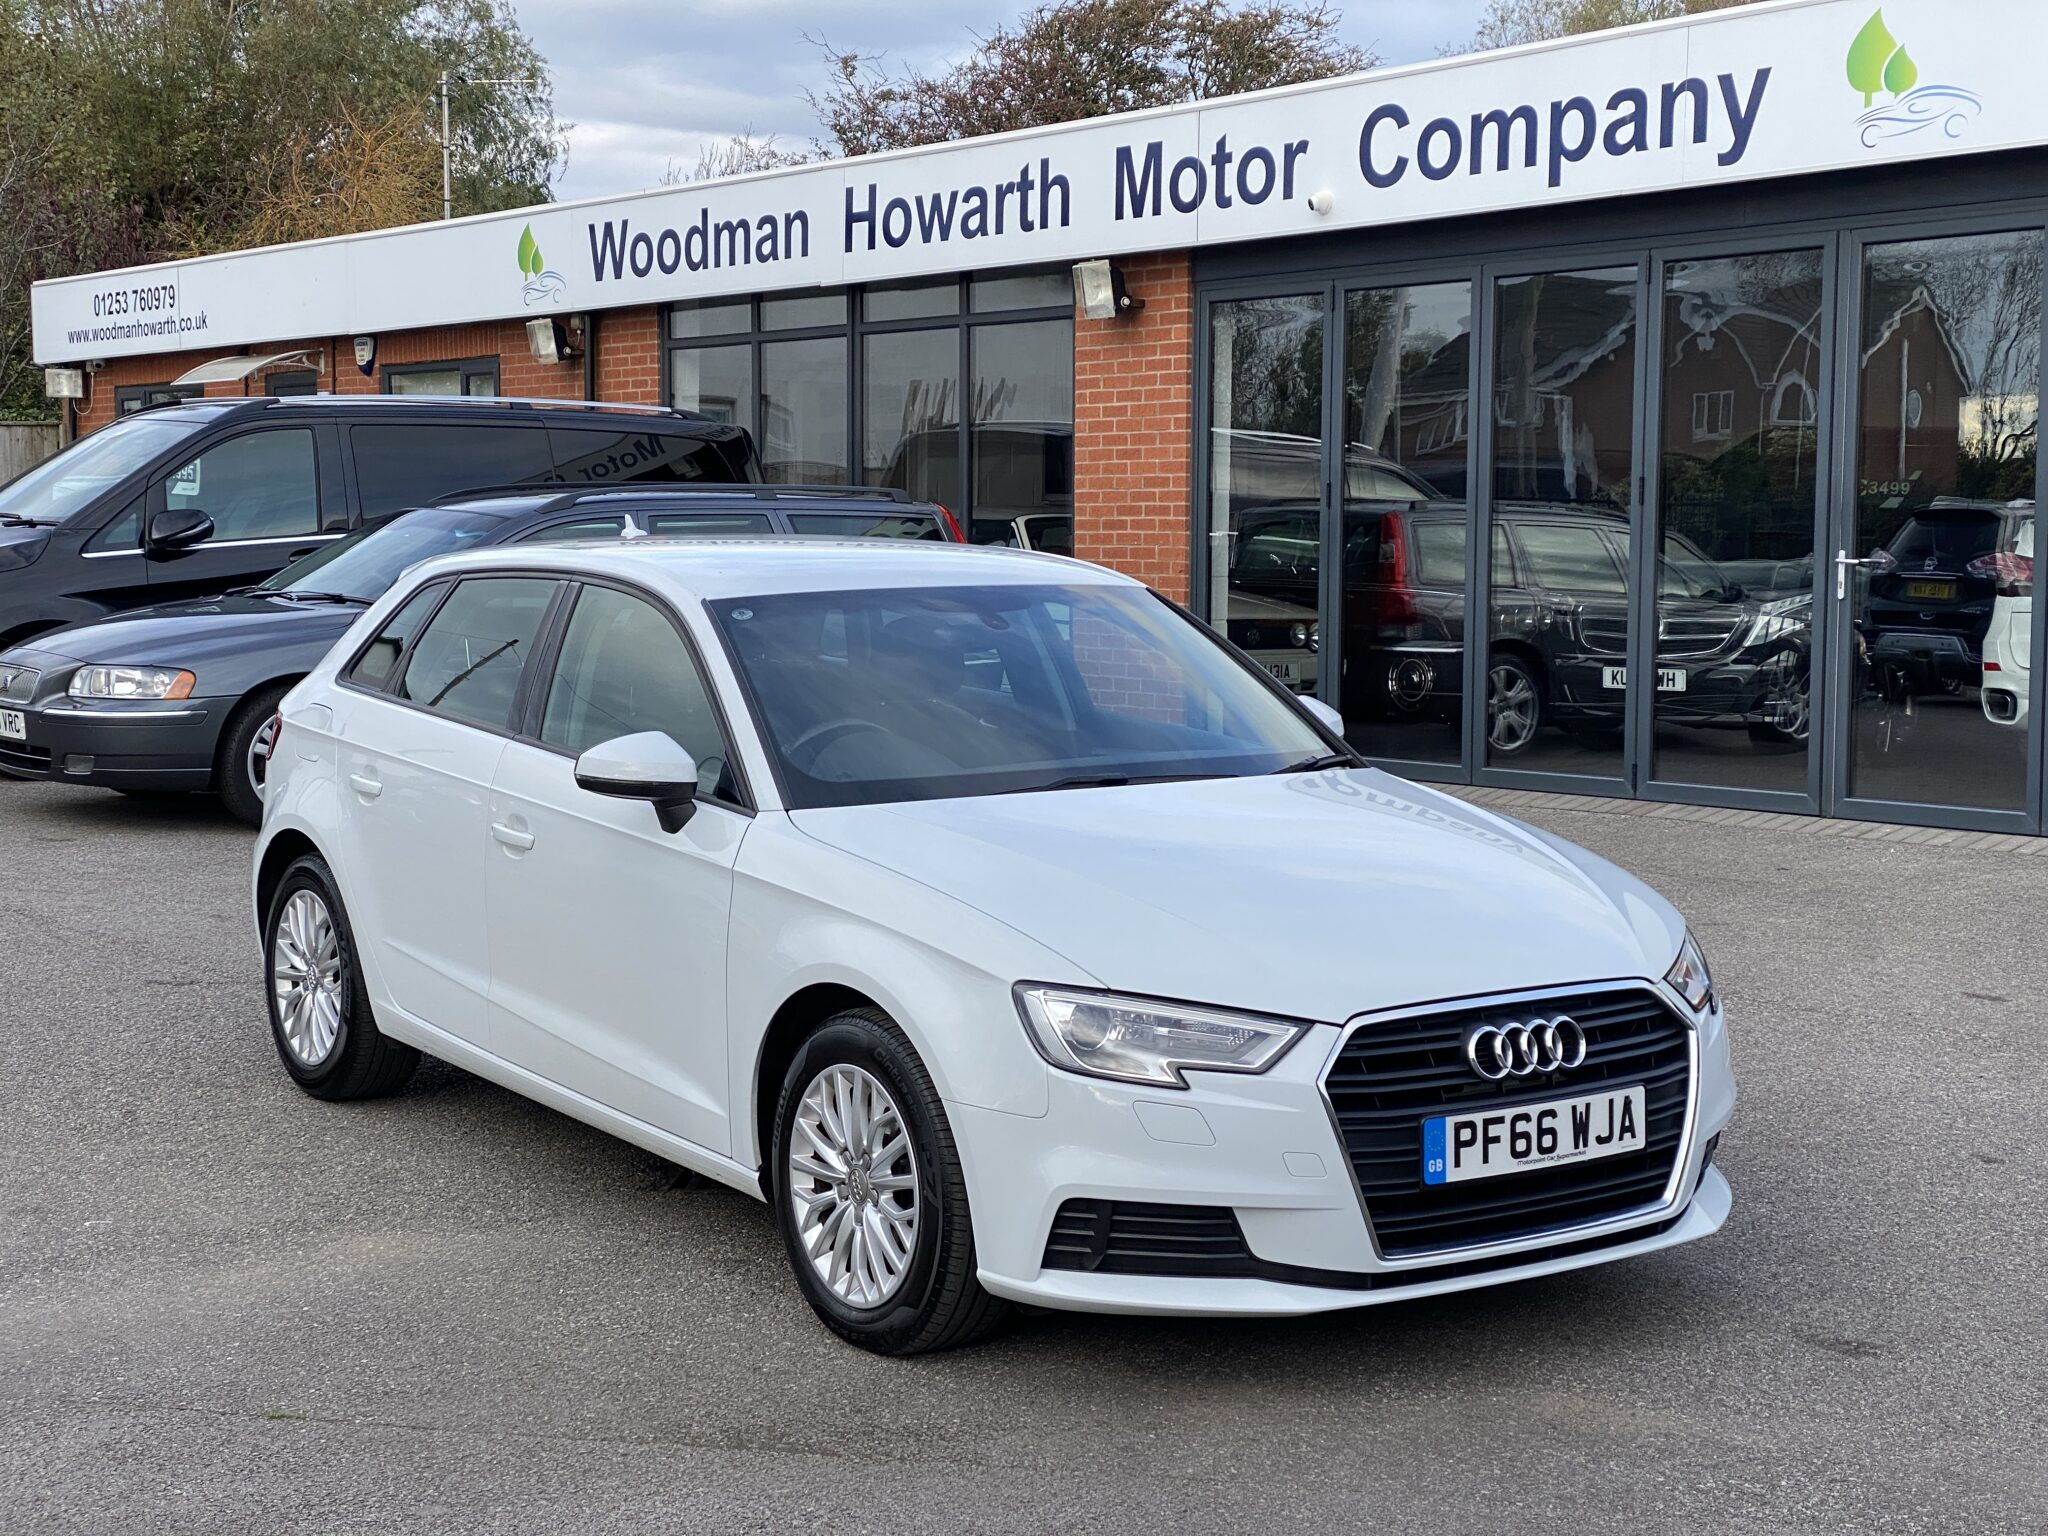 2016 66 AUDI A3 2.0 TDI SE TECHNIK 5 DOOR MANUAL 1 Prev Owner Only 30K Mls Apple Car Play